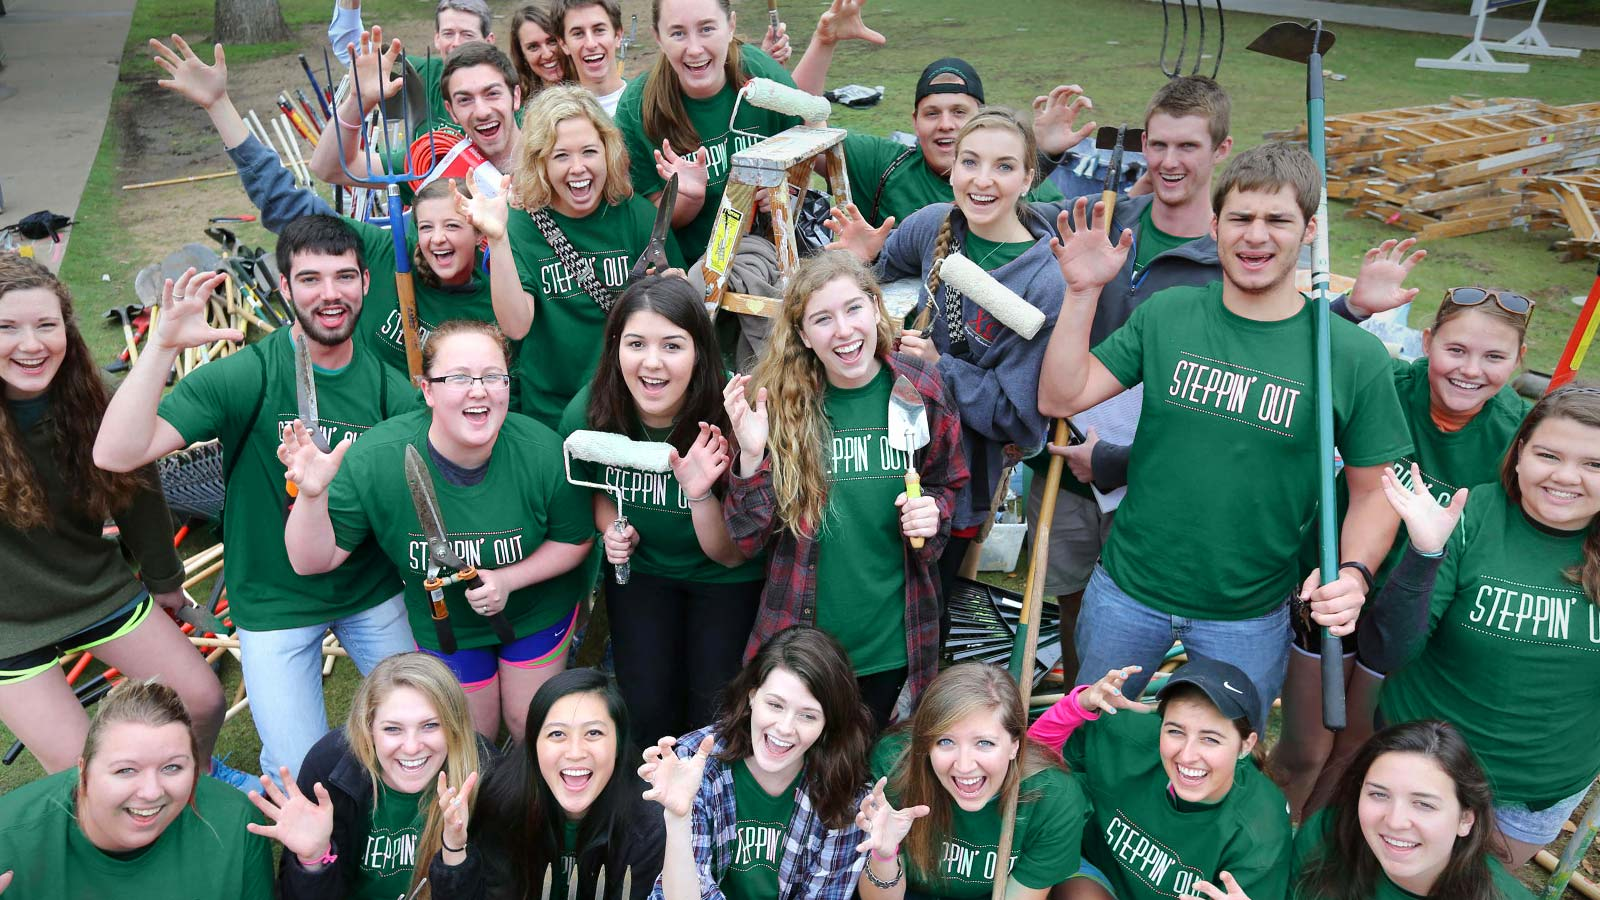 Steppin' Out strives to enhance student involvement in community service and attain community awareness, interaction and collaboration between Baylor University and the Waco community.